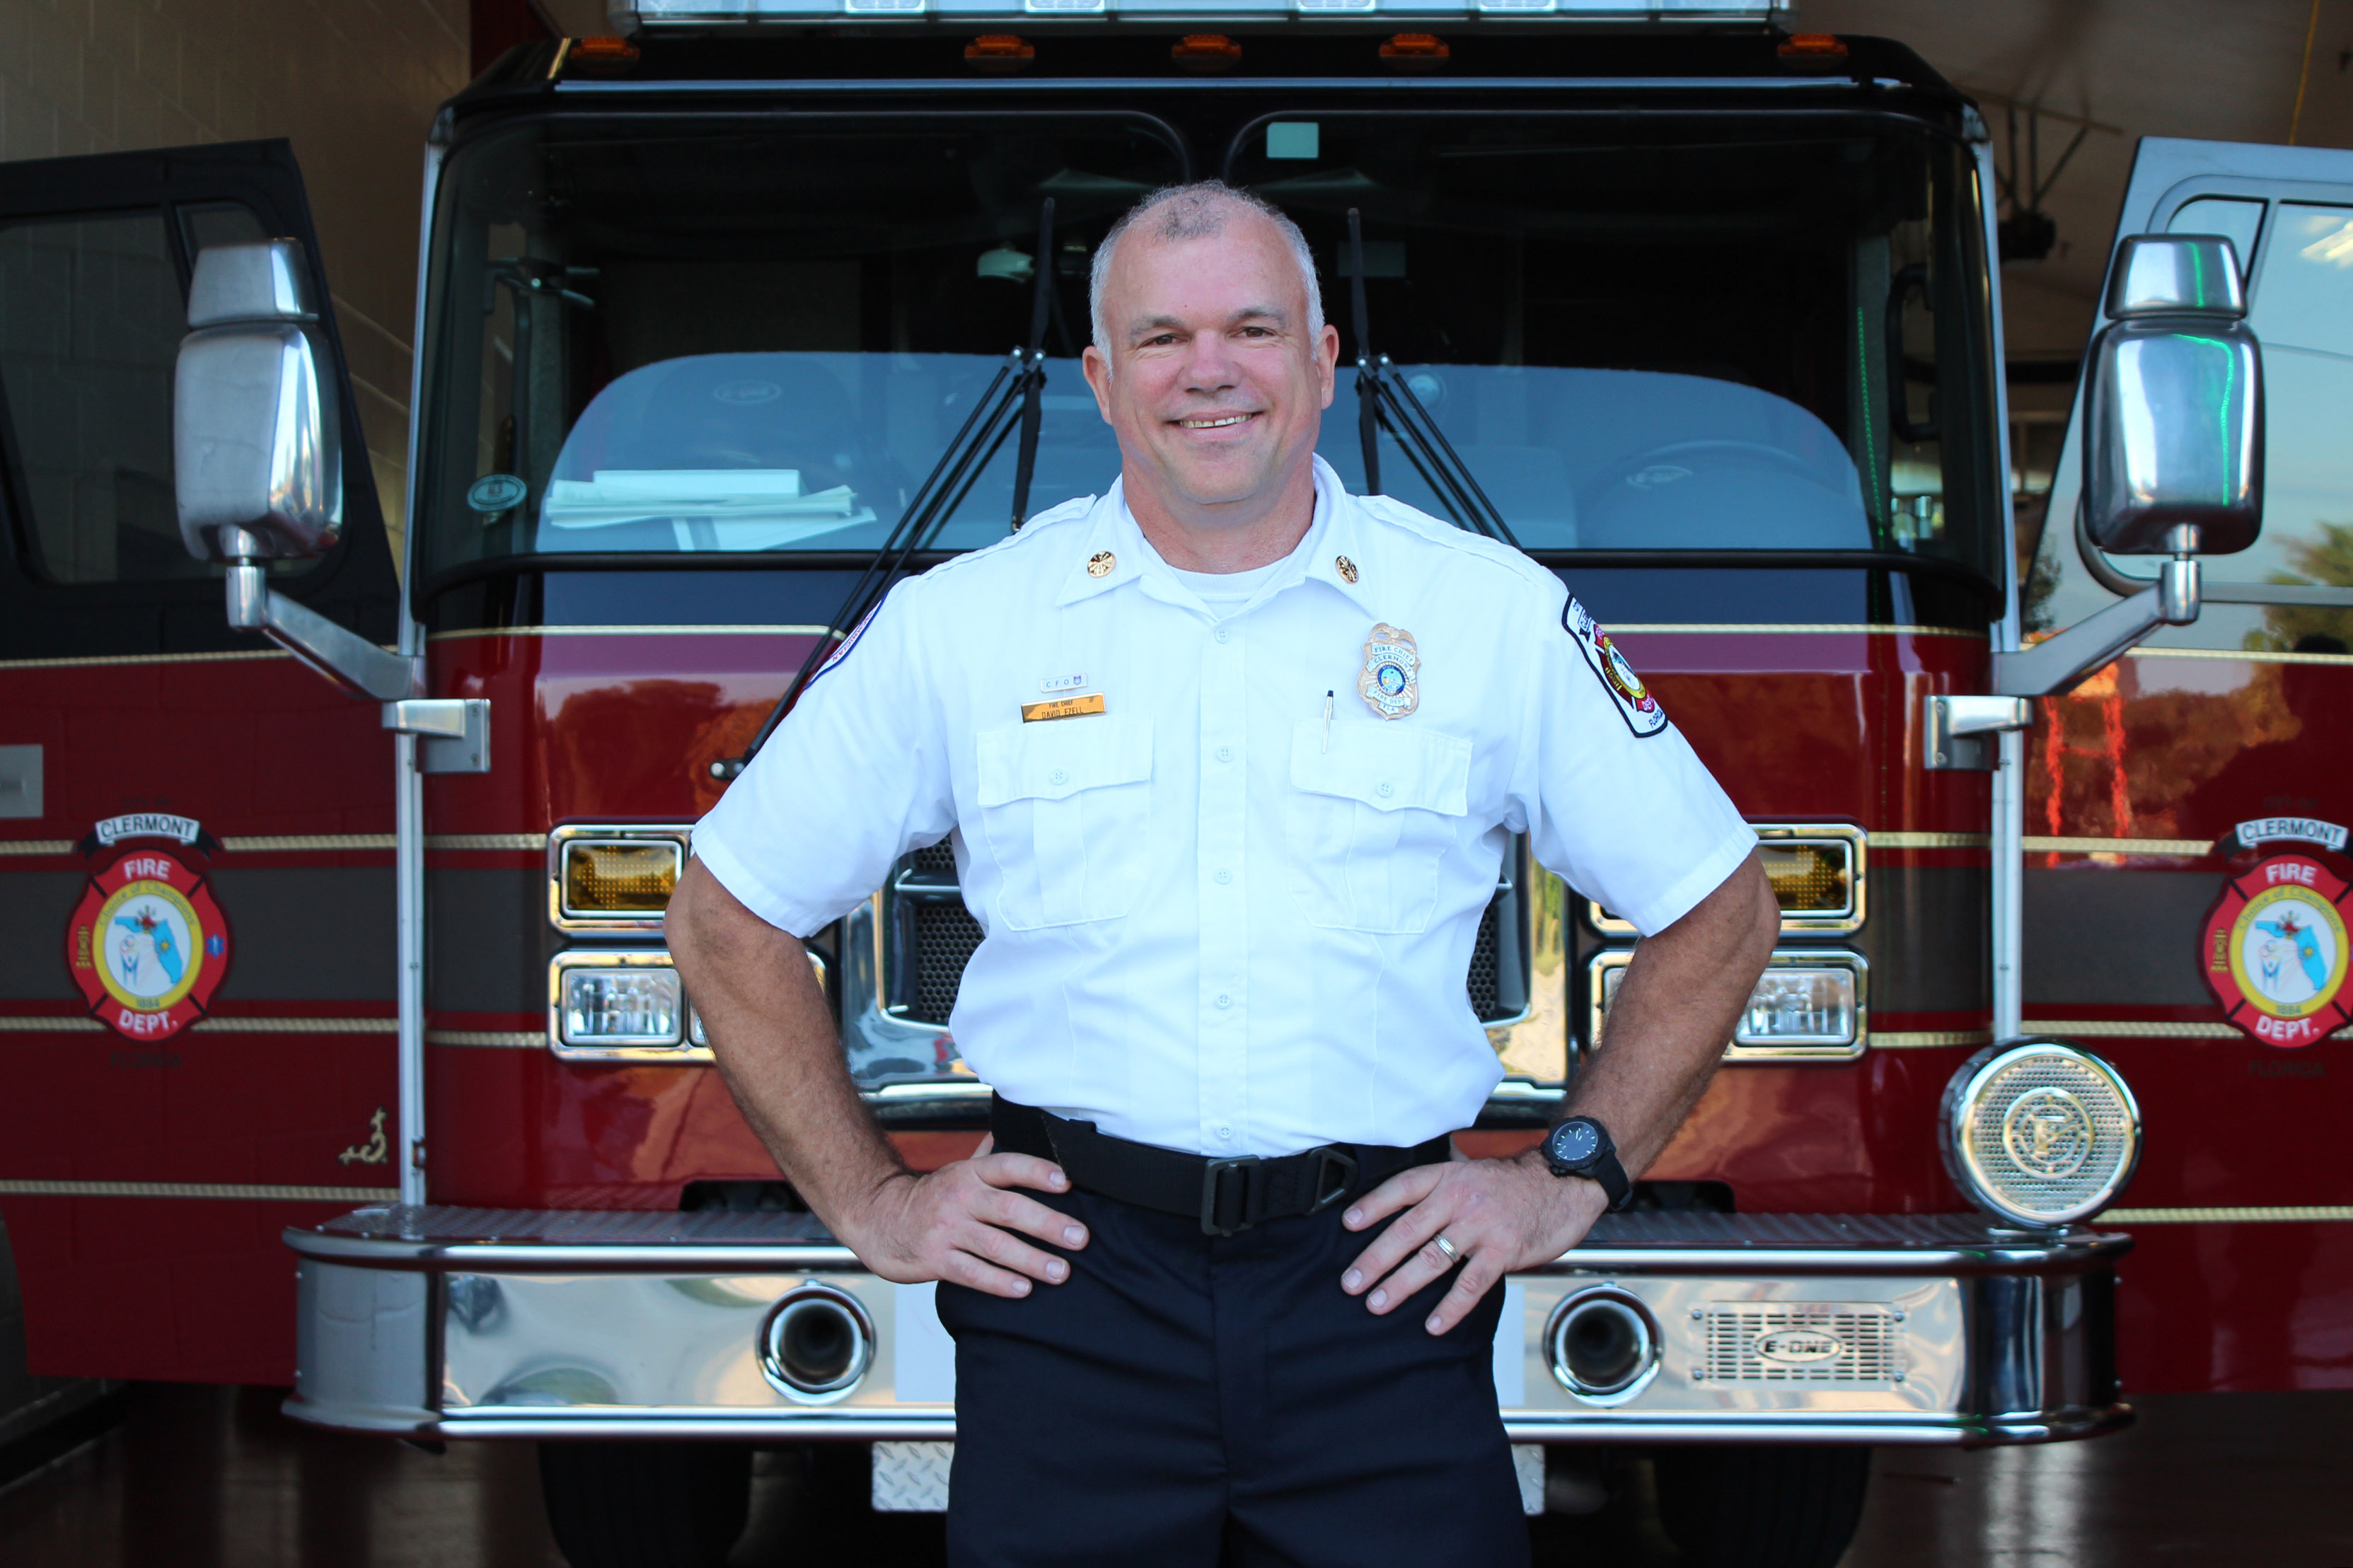 Photo of Chief Ezell standing in front of fire truck smiling